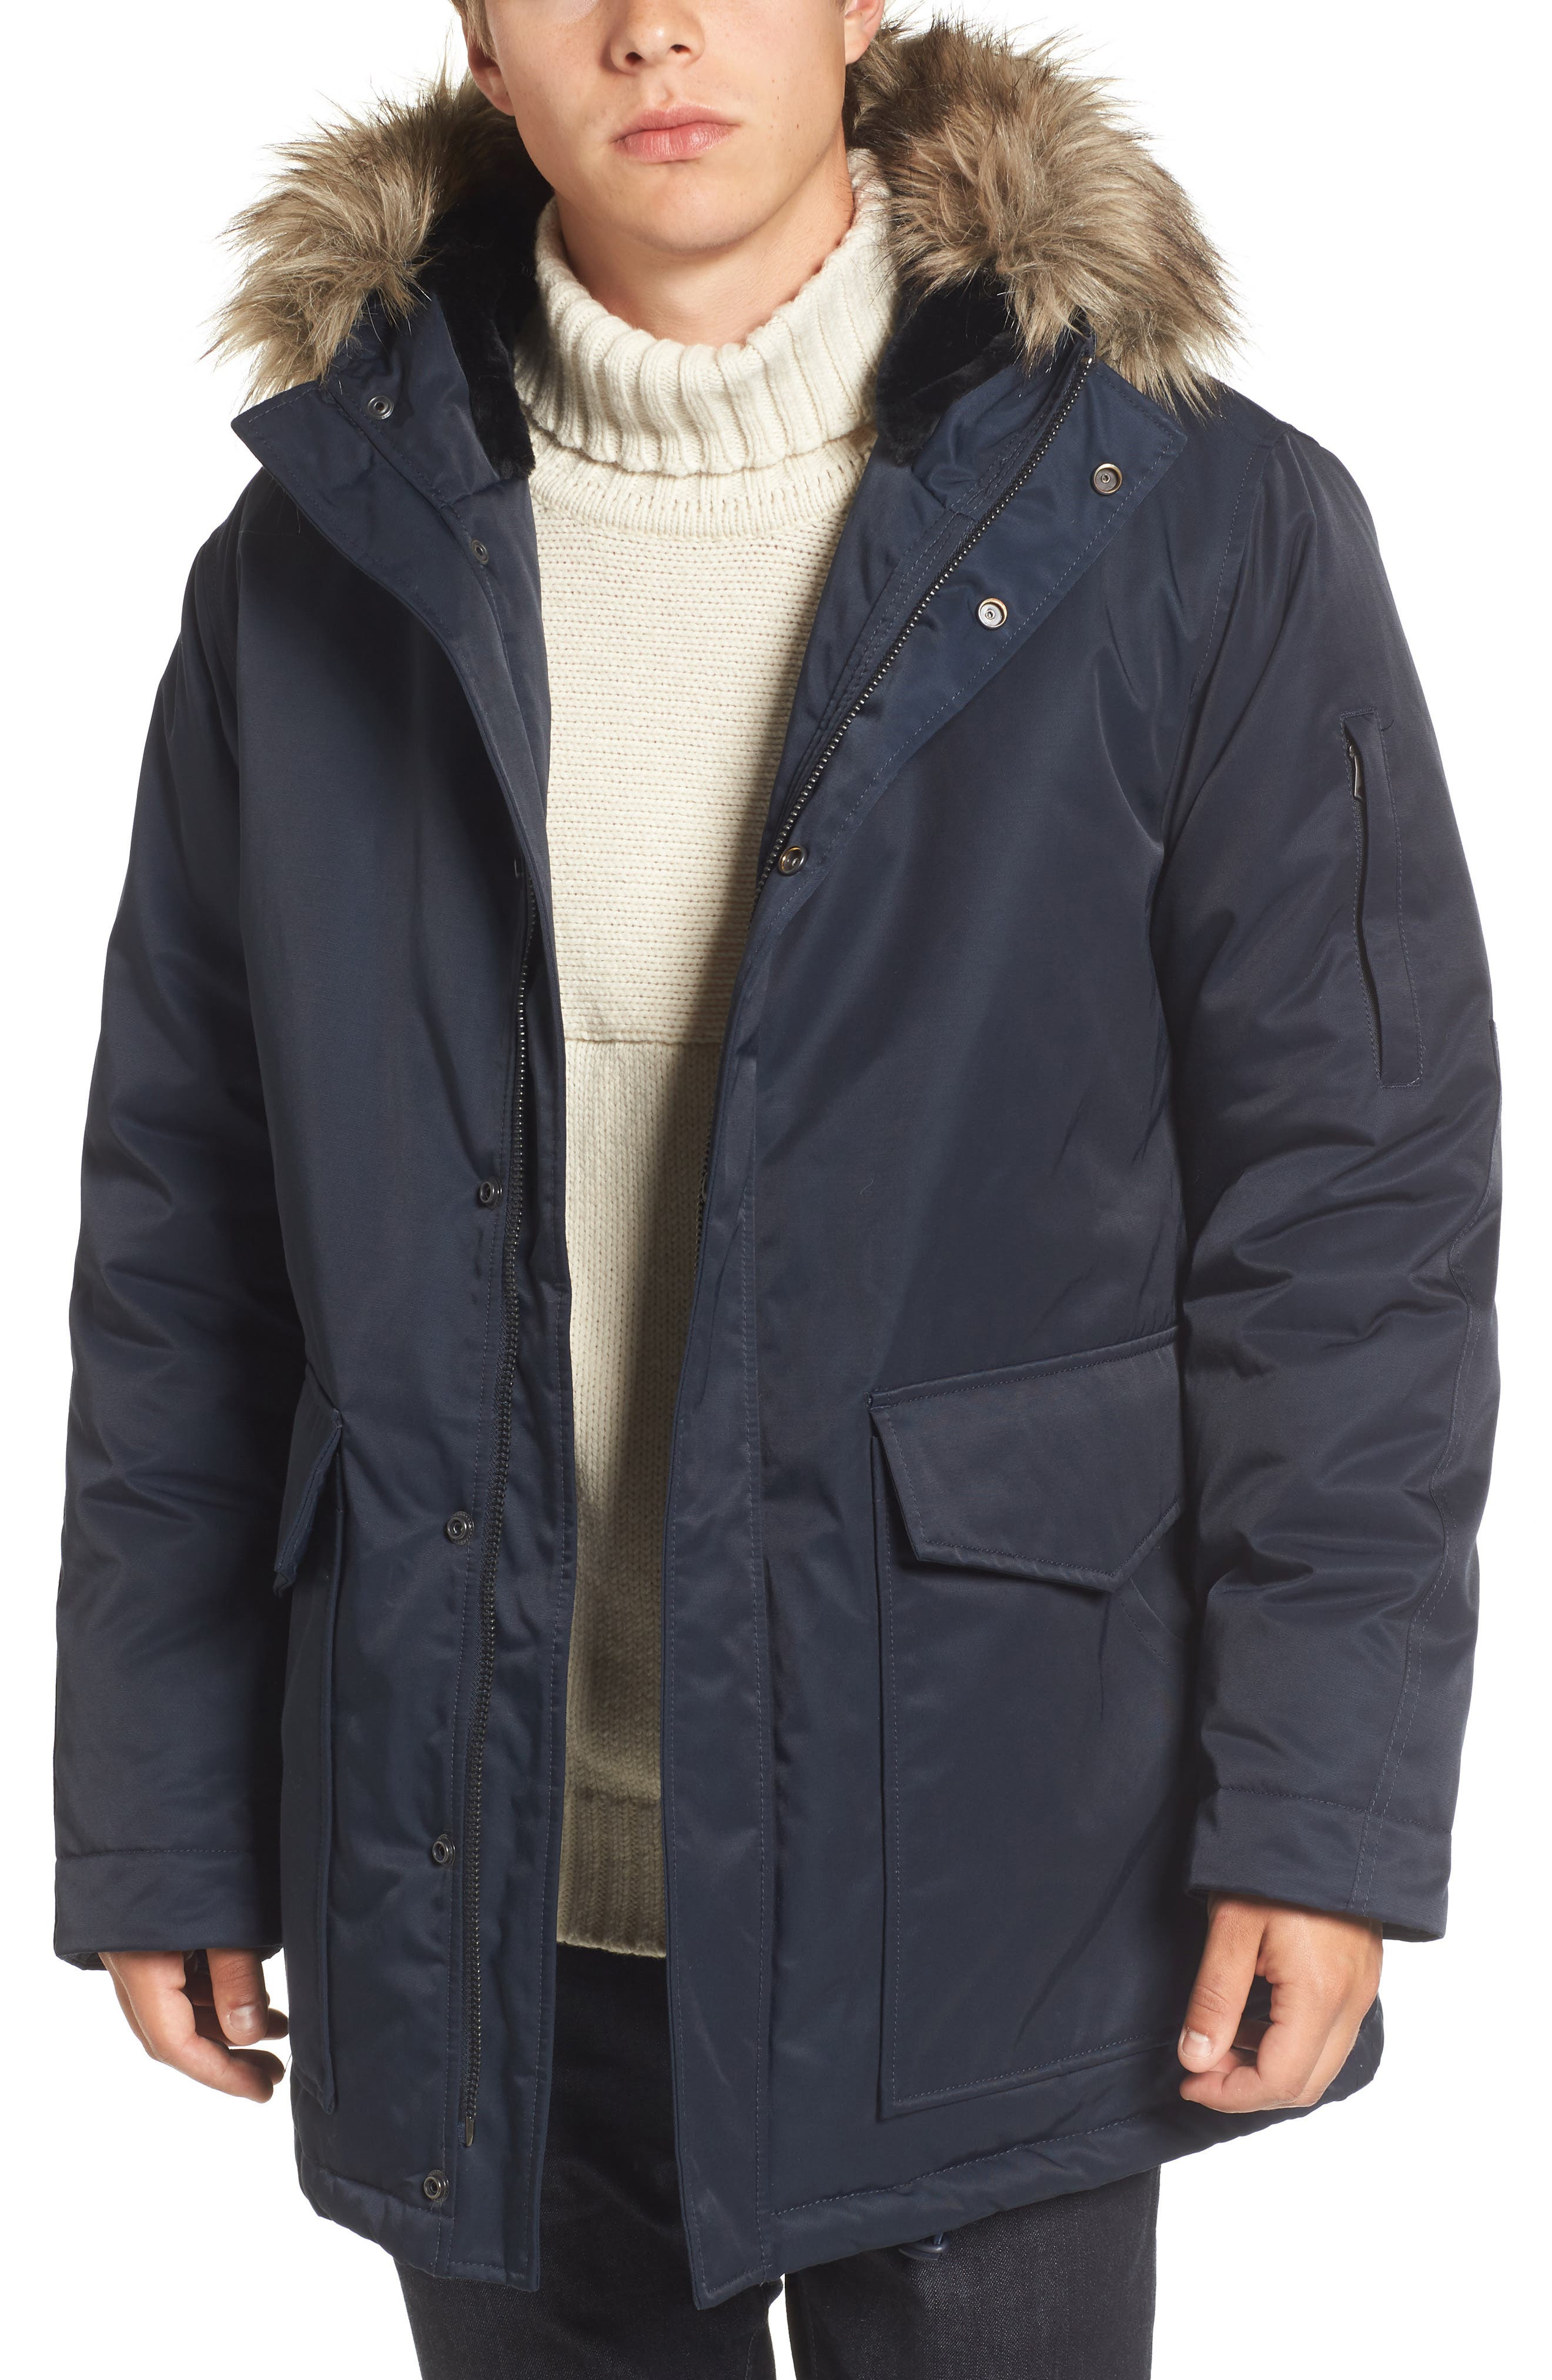 Bystander Hooded Parka with Faux Fur Trim,                         Main,                         color, Marine Blue